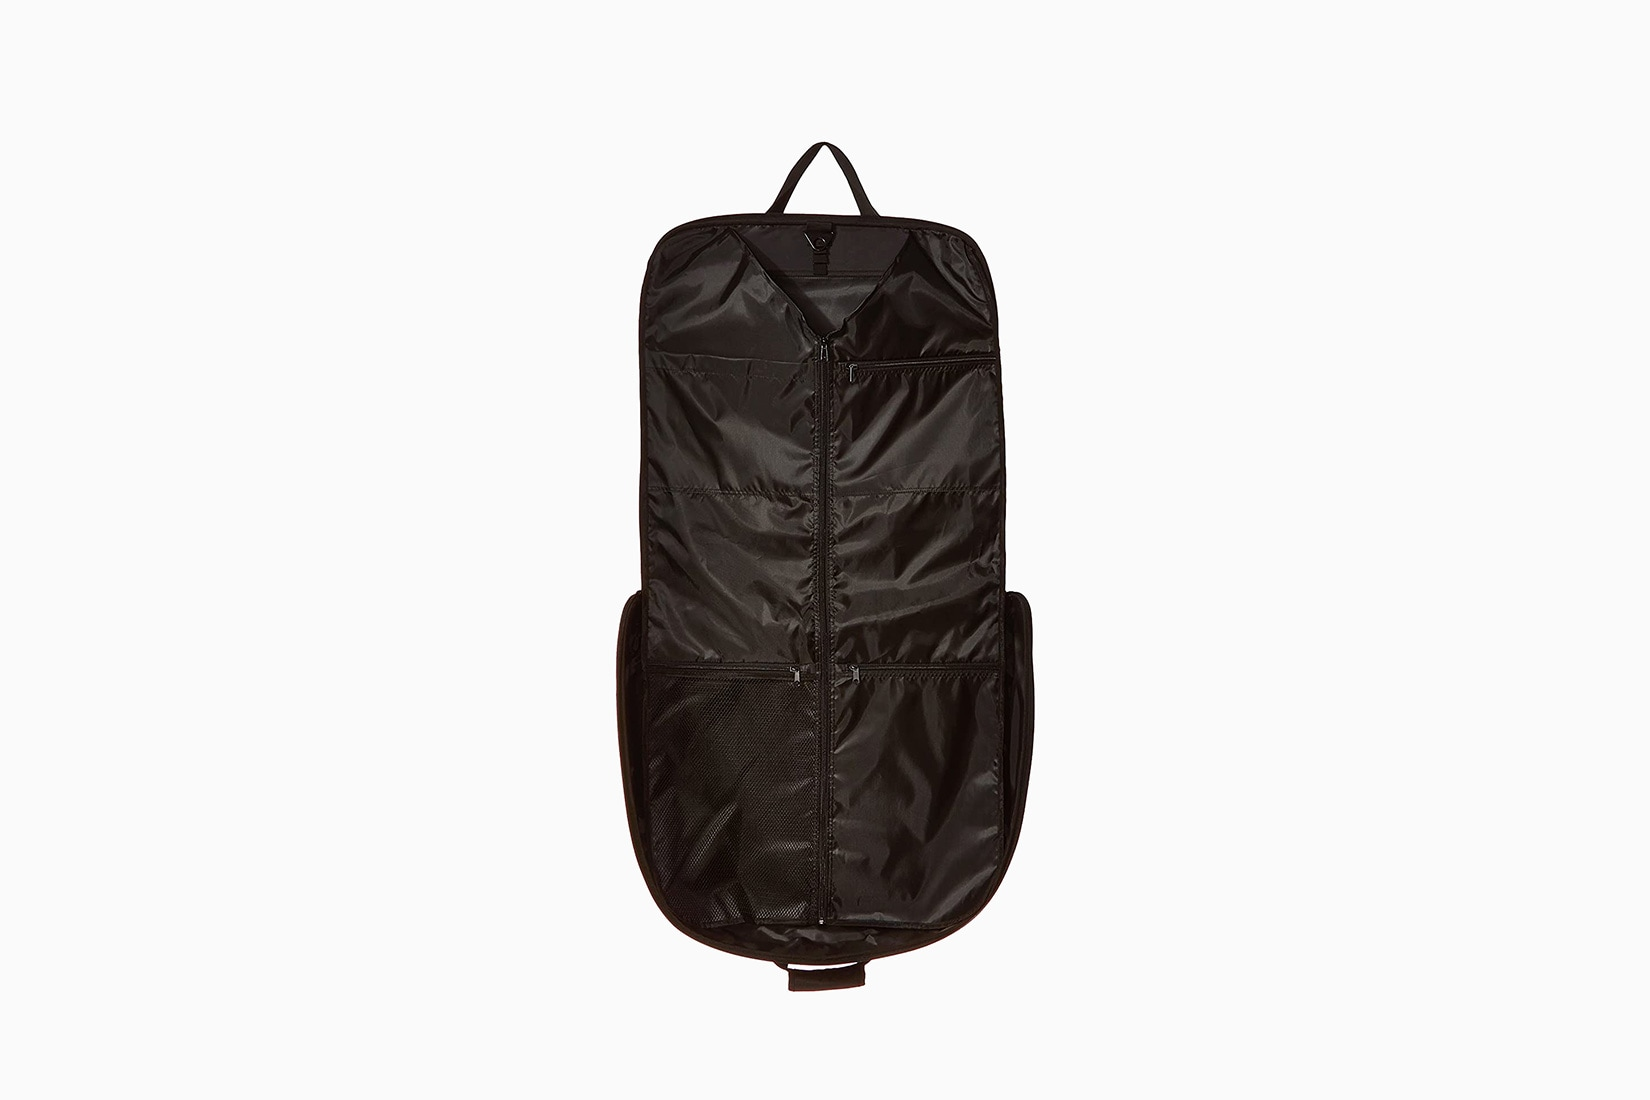 best garment bags budget amazonbasics review - Luxe Digital